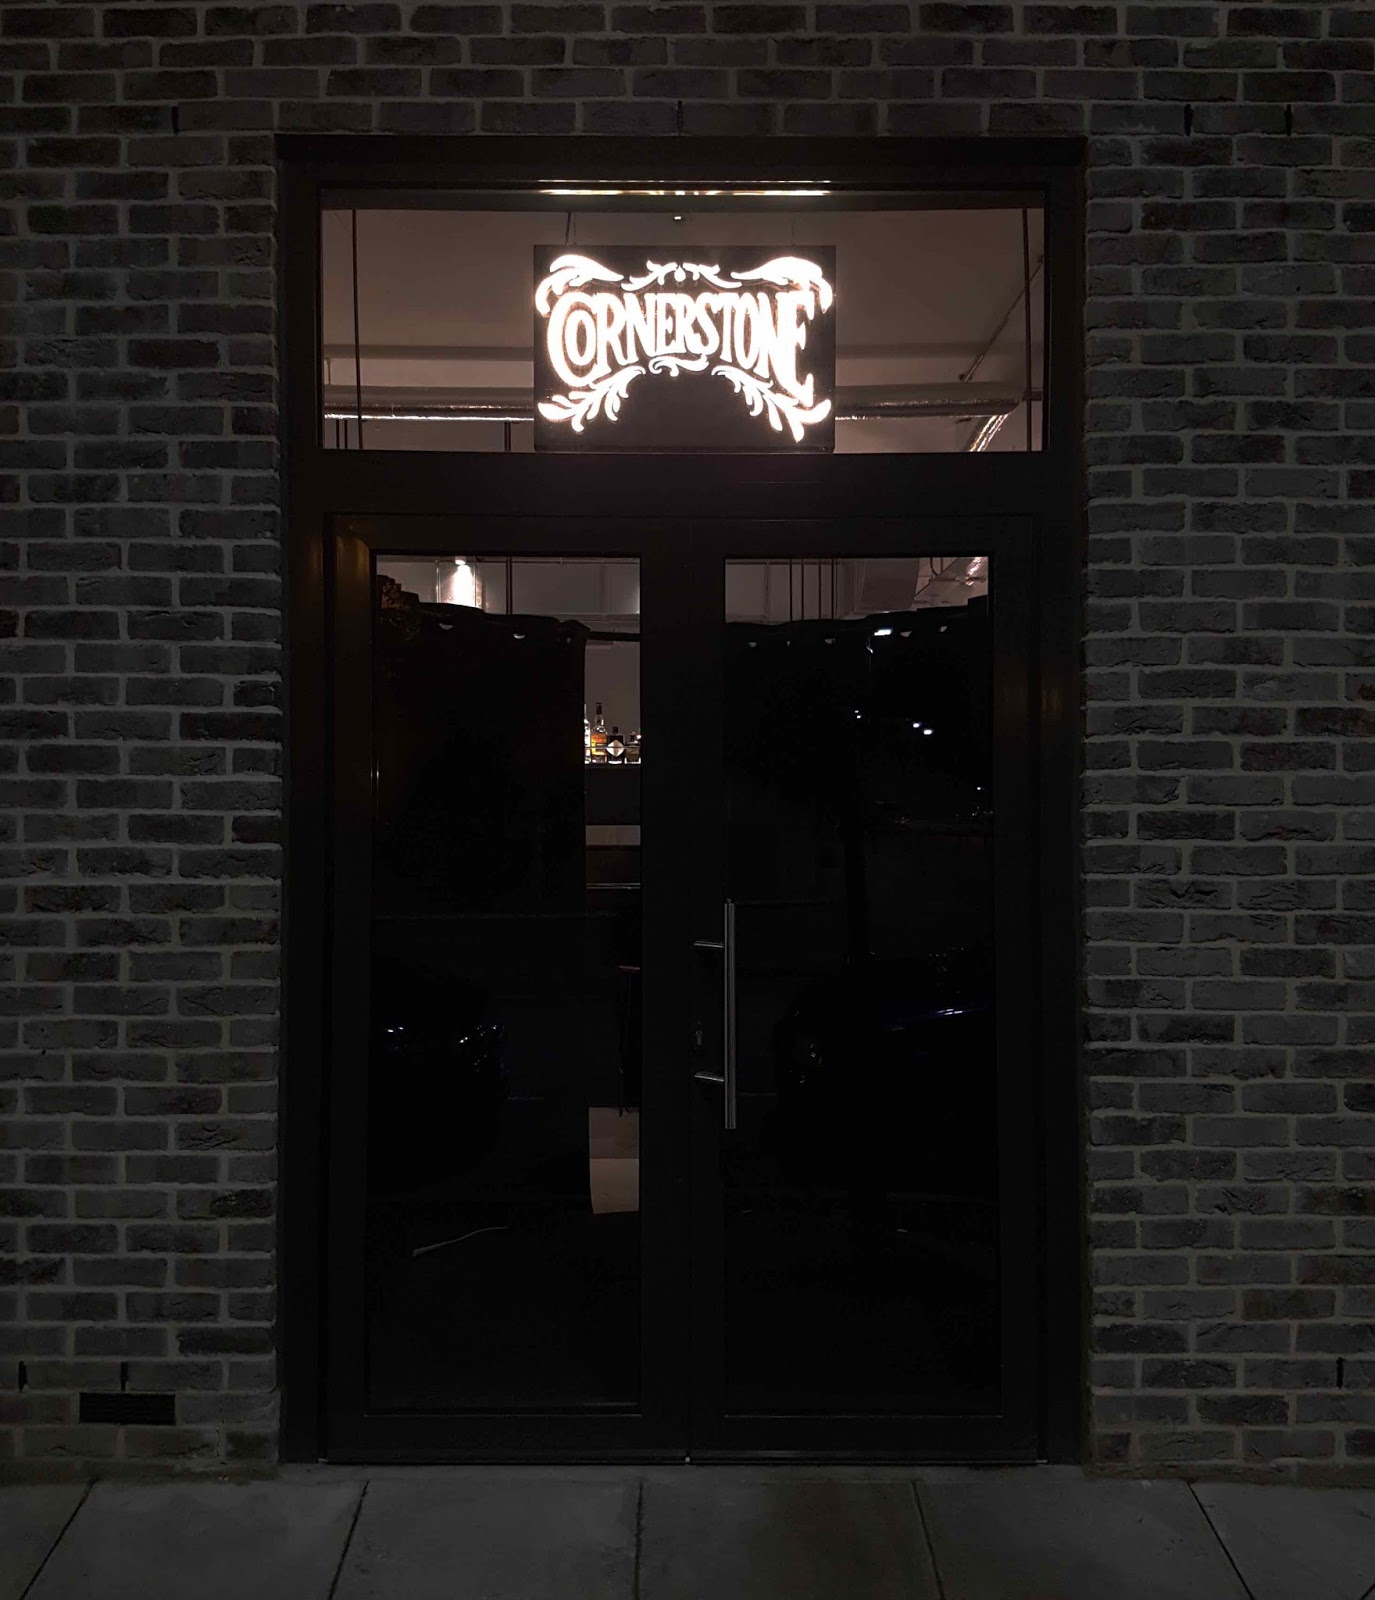 3787f02f98 Cornerstone in Hackney Wick is owned by Tom Brown, former head chef of the  Michelin-starred Nathan Outlaw at The Capital (where I had one of my best  meals ...